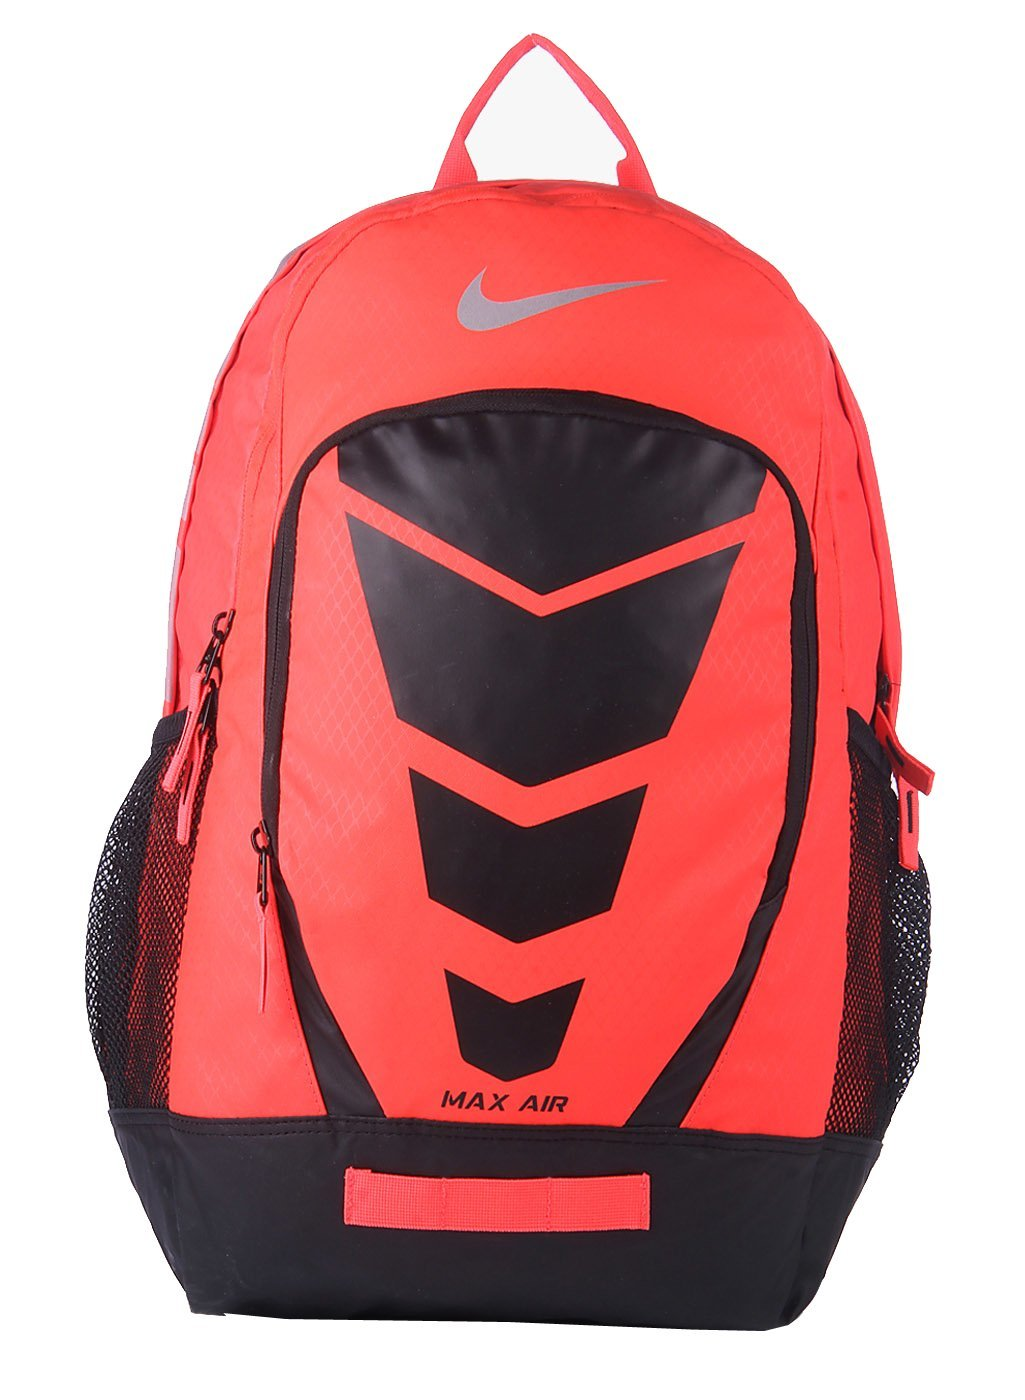 0f1e1a61c8 Buy Nike Vapor BP Large Backpack Black Volt Met Silver in Cheap ...